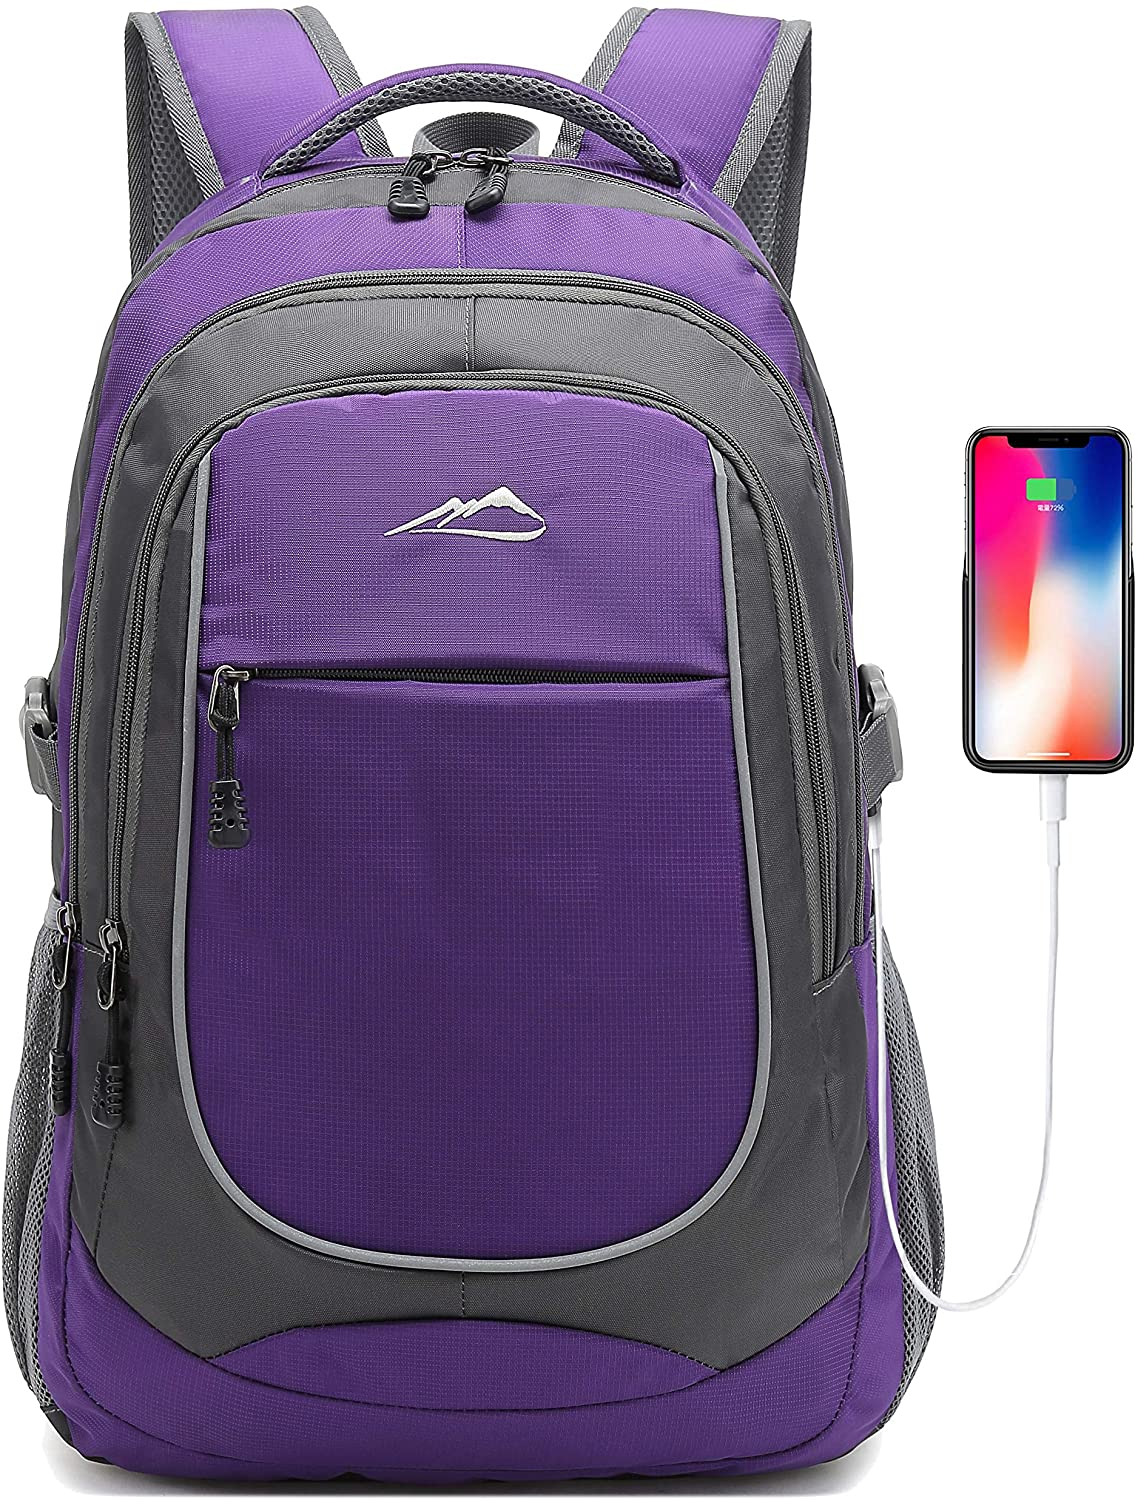 Backpack for School College Student Laptop Business Travel Bookbag with USB Charging Port Luggage Chest Strap Night Light Reflective (Purple)